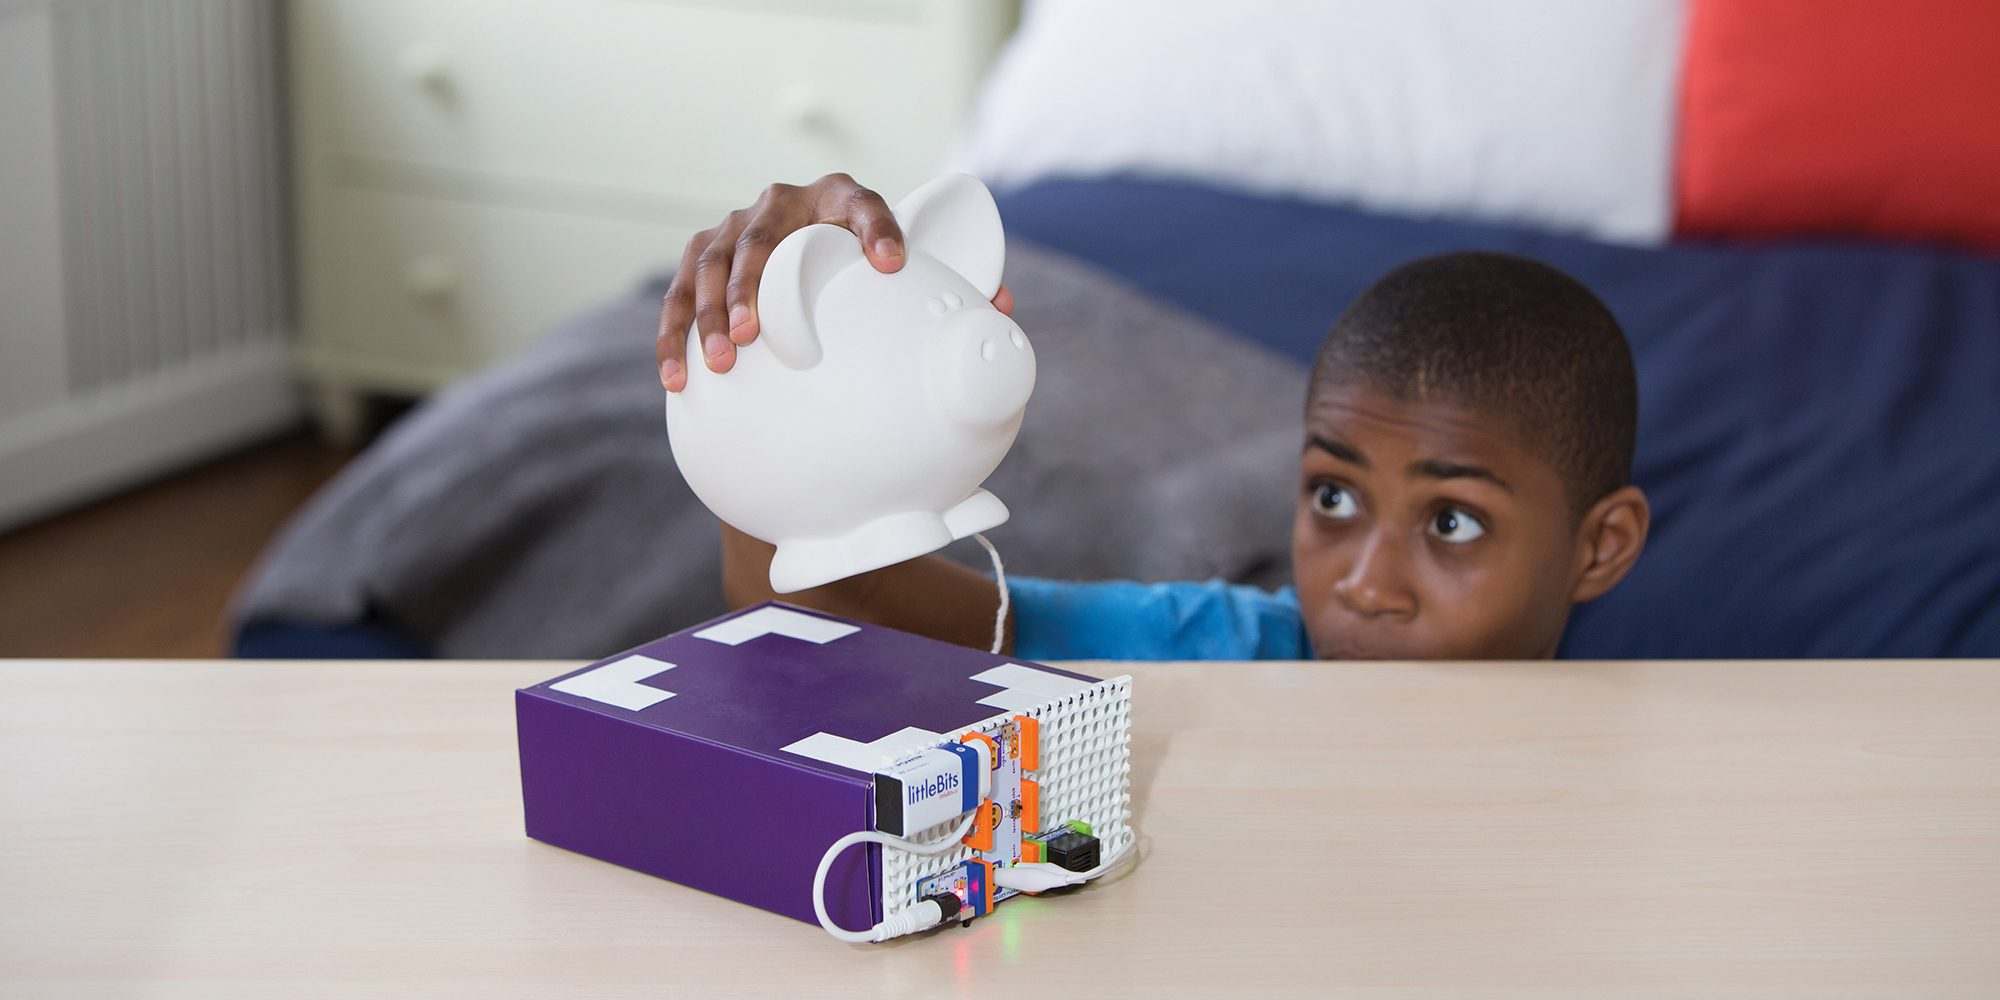 littlebits-rule-your-room